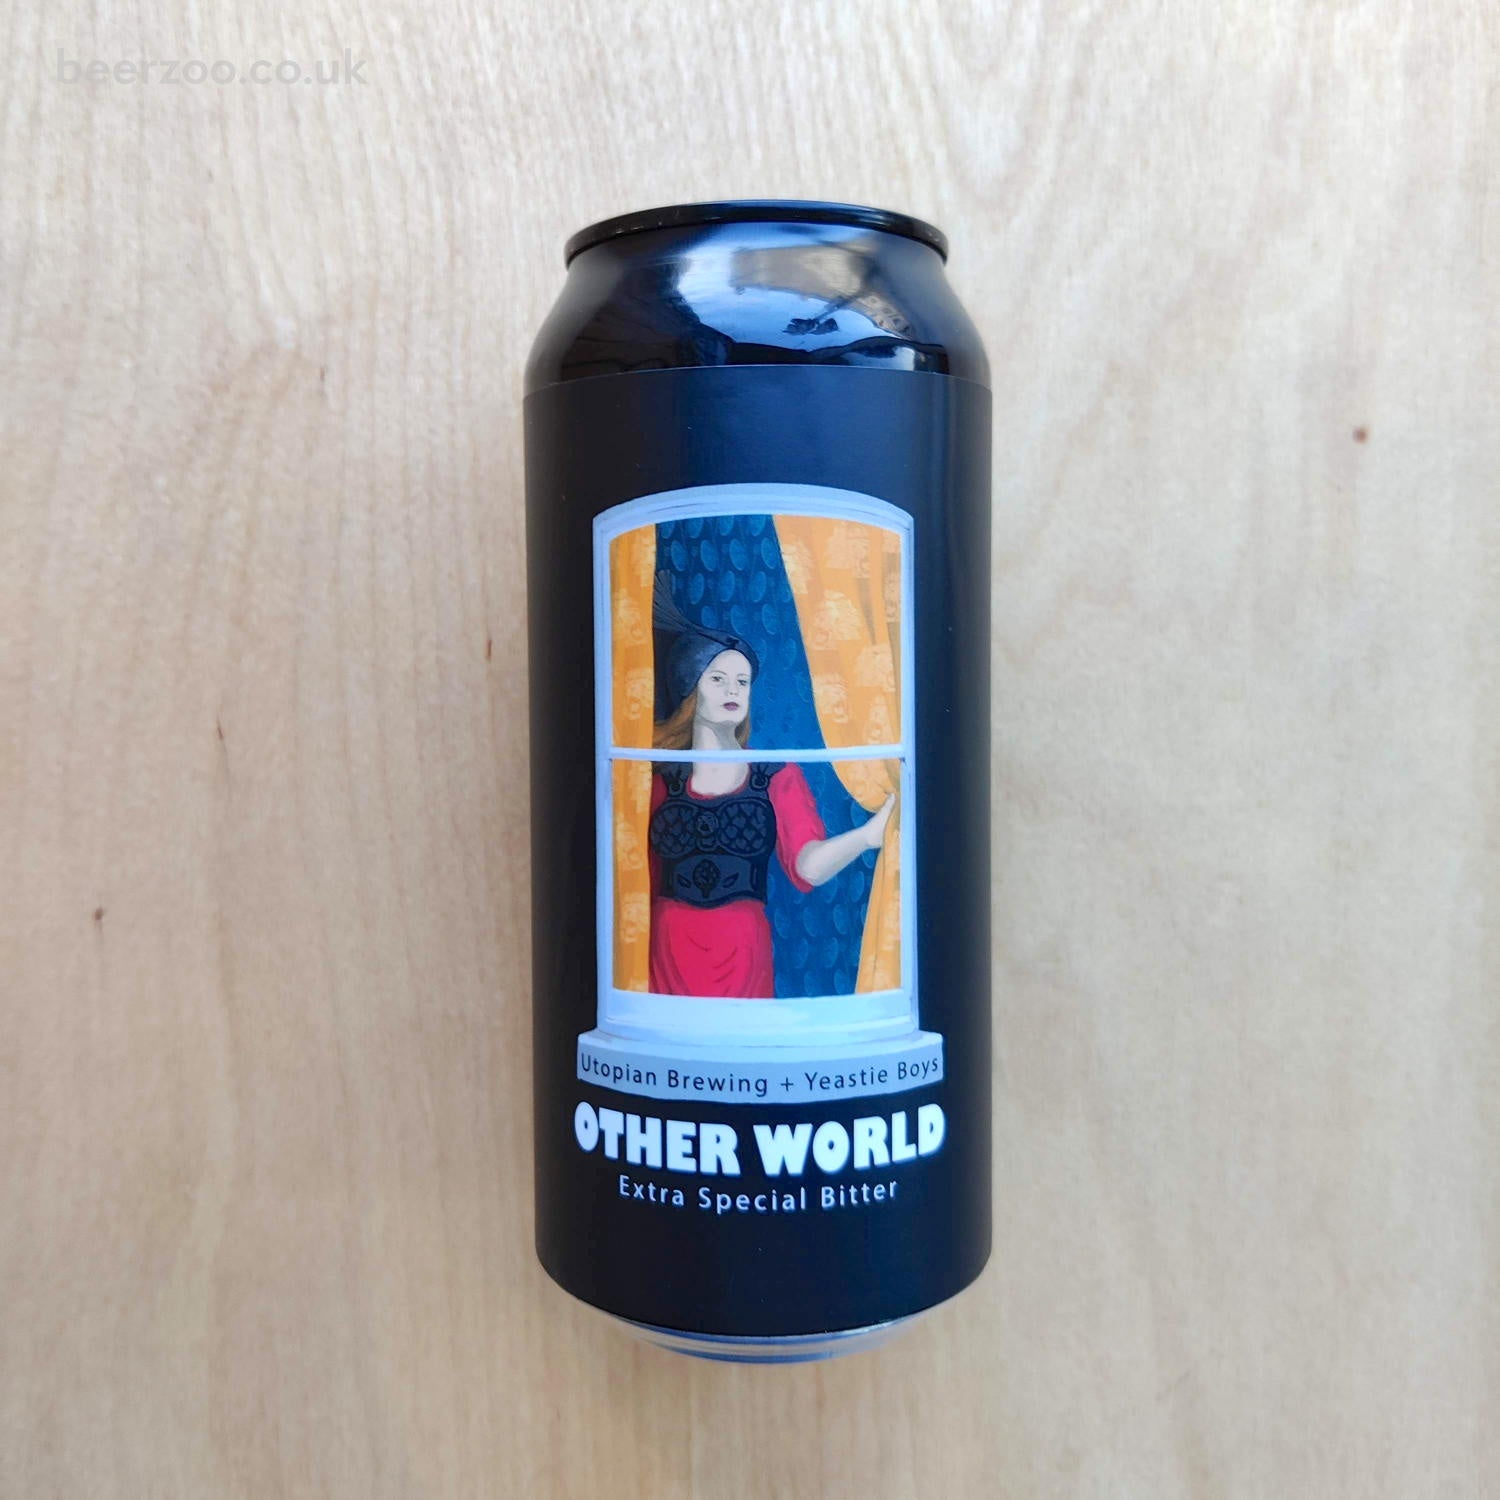 Utopian / Yeastie Boys - Other World 5.4% (440ml)